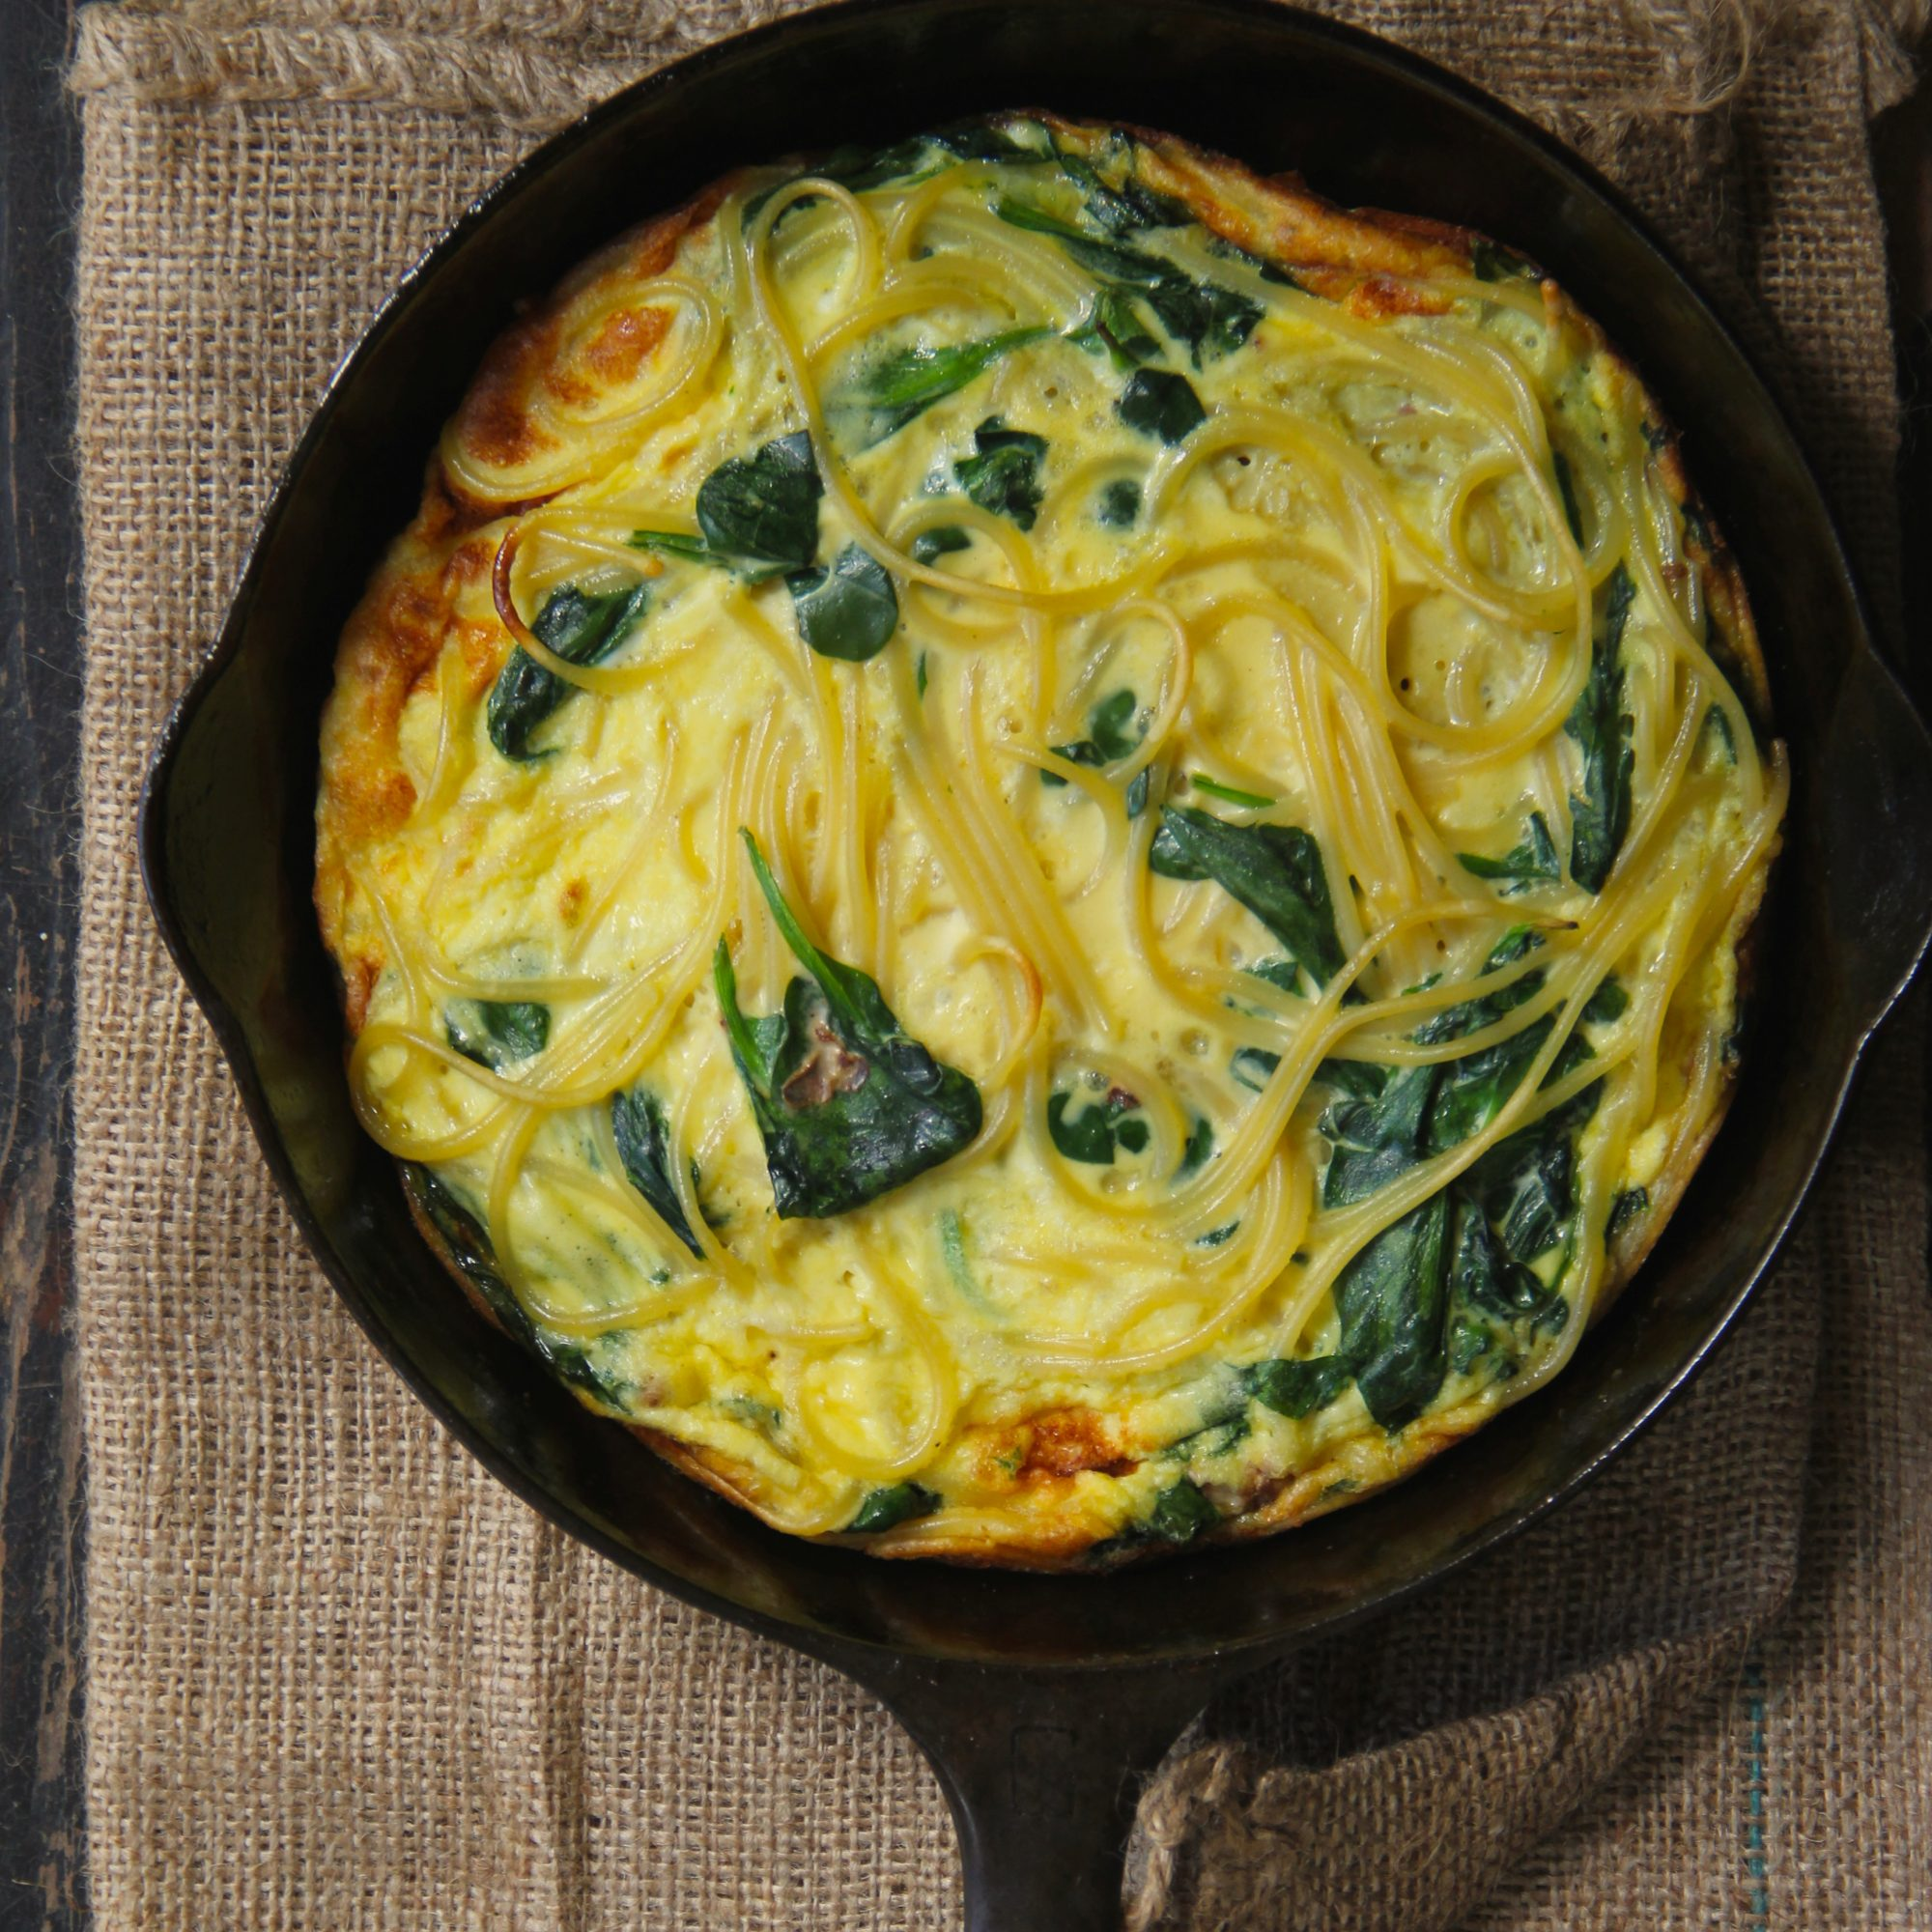 Spinach and Spaghetti Omelette